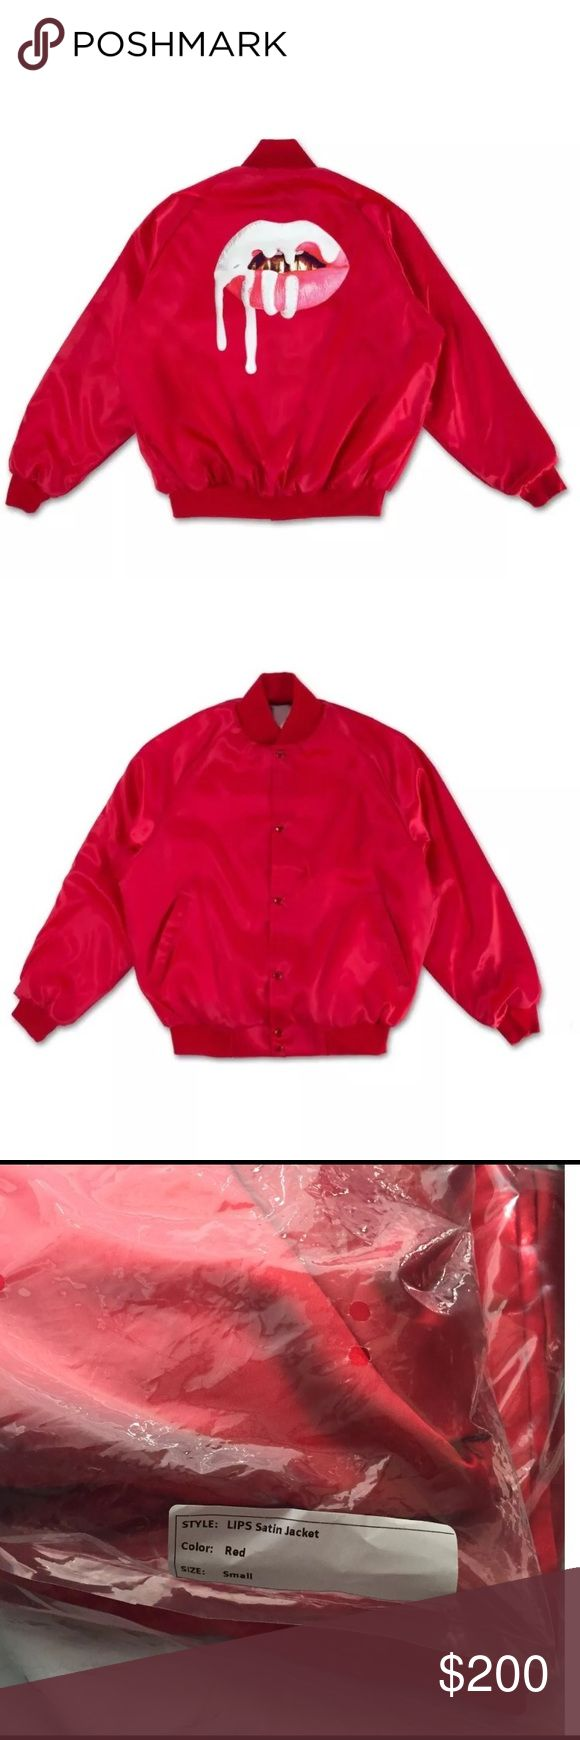 AUTHENTIC Kylie Jenner Lips Satin Bomber Jacket AUTHENTIC Kylie Jenner Lips Satin Bomber Jacket  Red - Size Small SOLD OUT on Kylie Jenner Shop website 100% Authentic-  comes in original packaging - Standard Fit - Satin Polyester  - Patch sewn on back  - Woven Label - Designed in Calabasas  - Made in USA Kylie Cosmetics Jackets & Coats